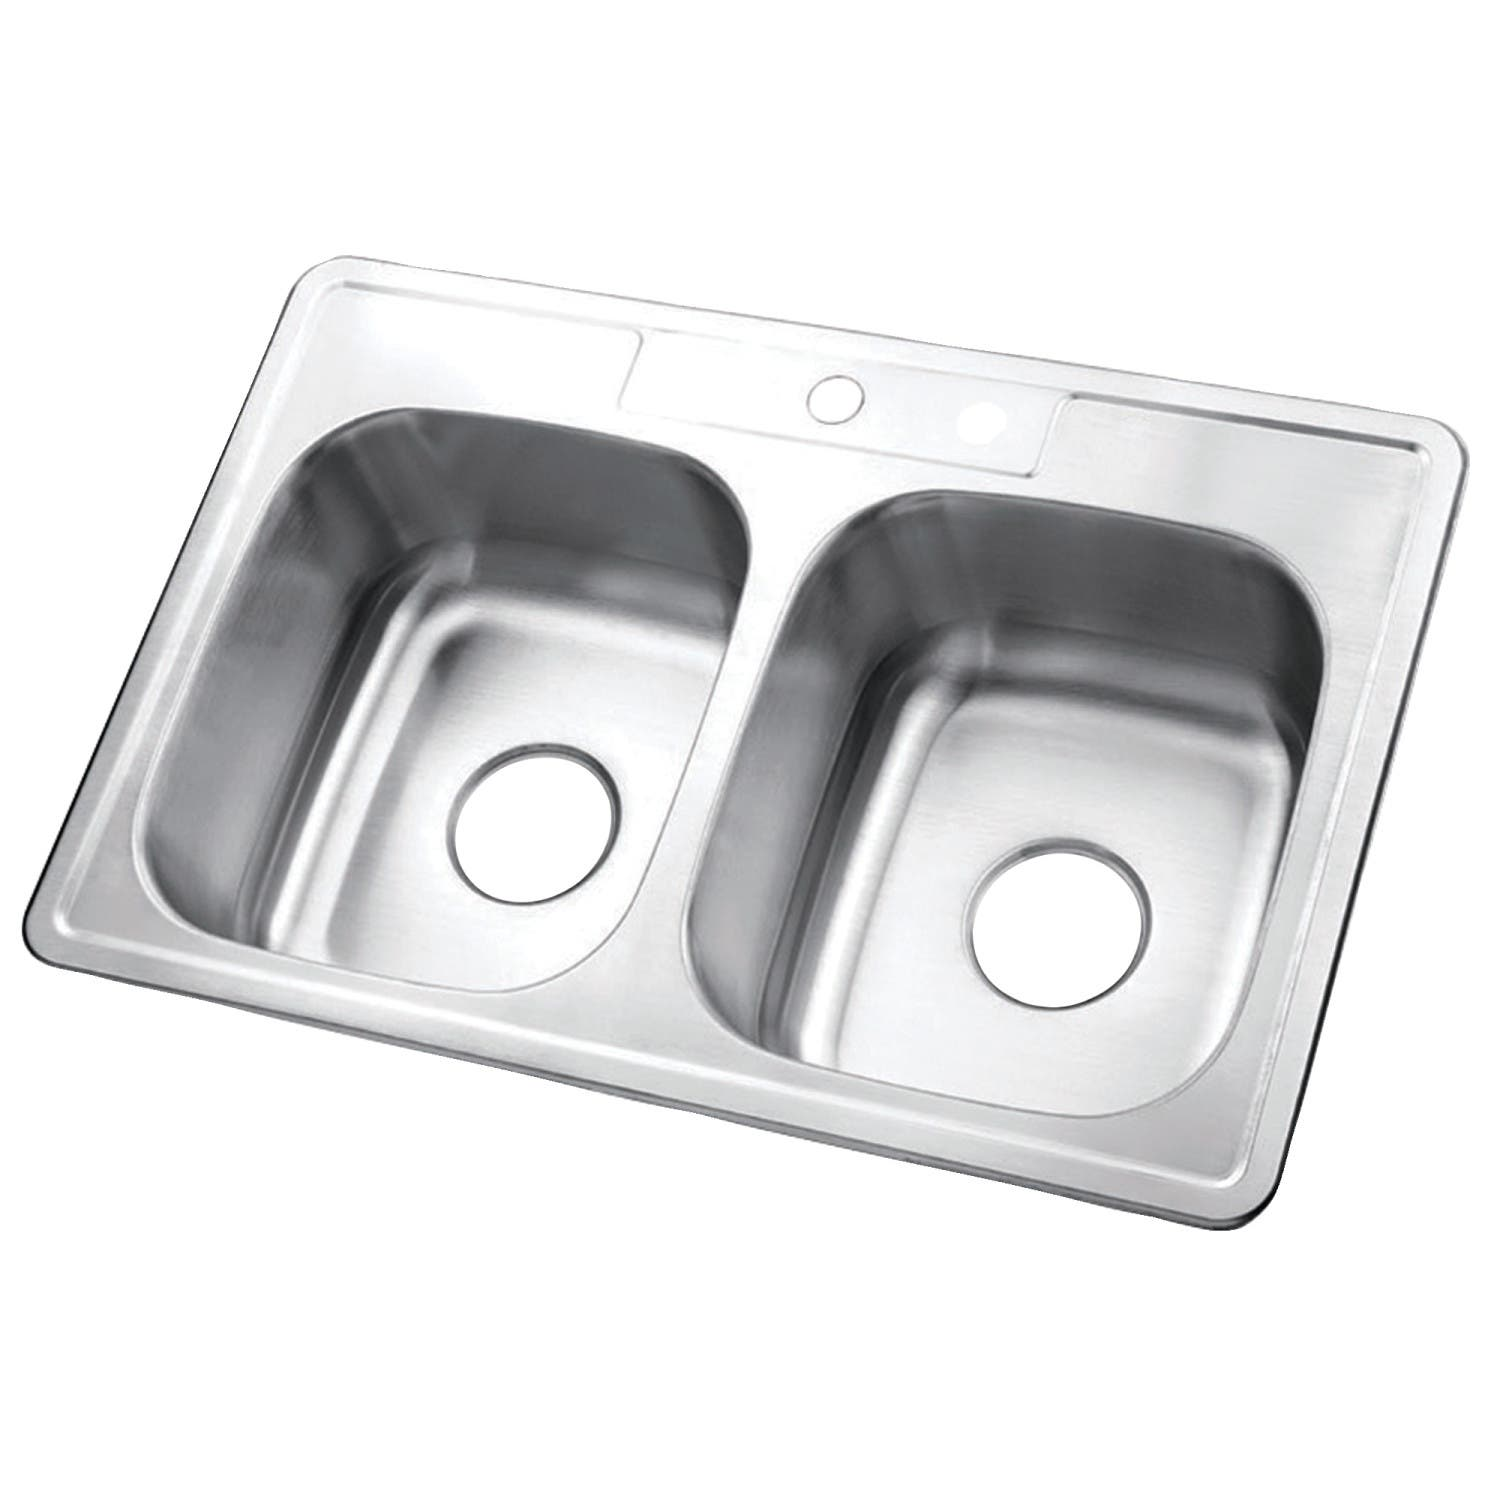 "Gourmetier GKTD332281 33""x22""x8"" Self-Rimming Stainless Steel Kitchen Sink"